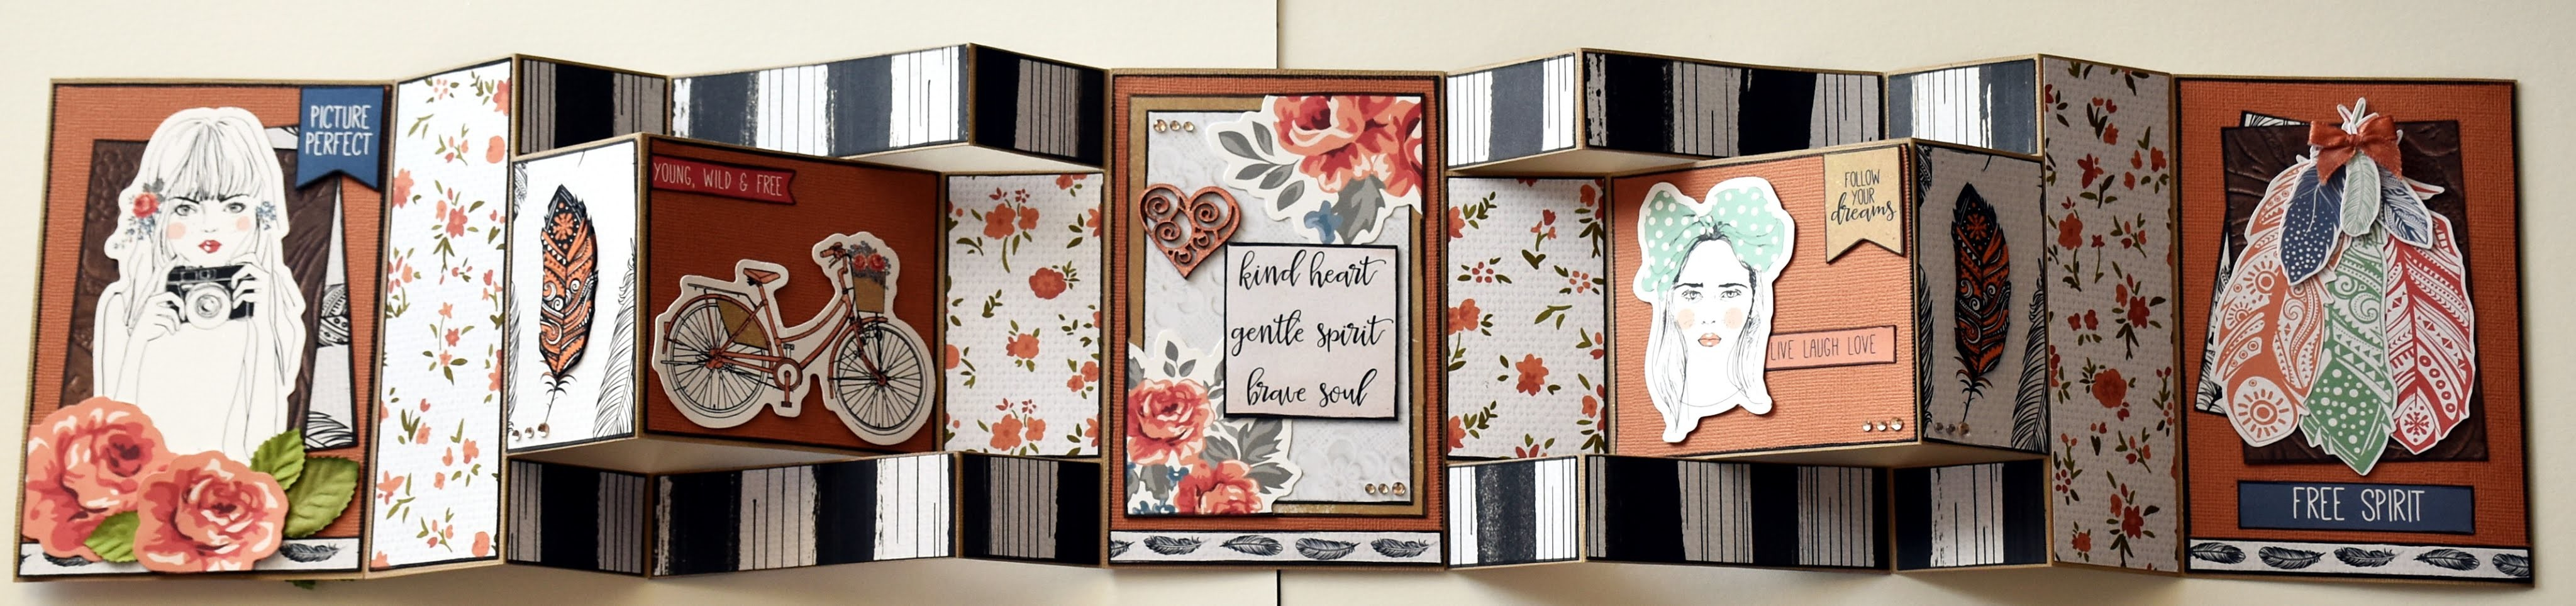 Extended Gatefold Card - How to make one!